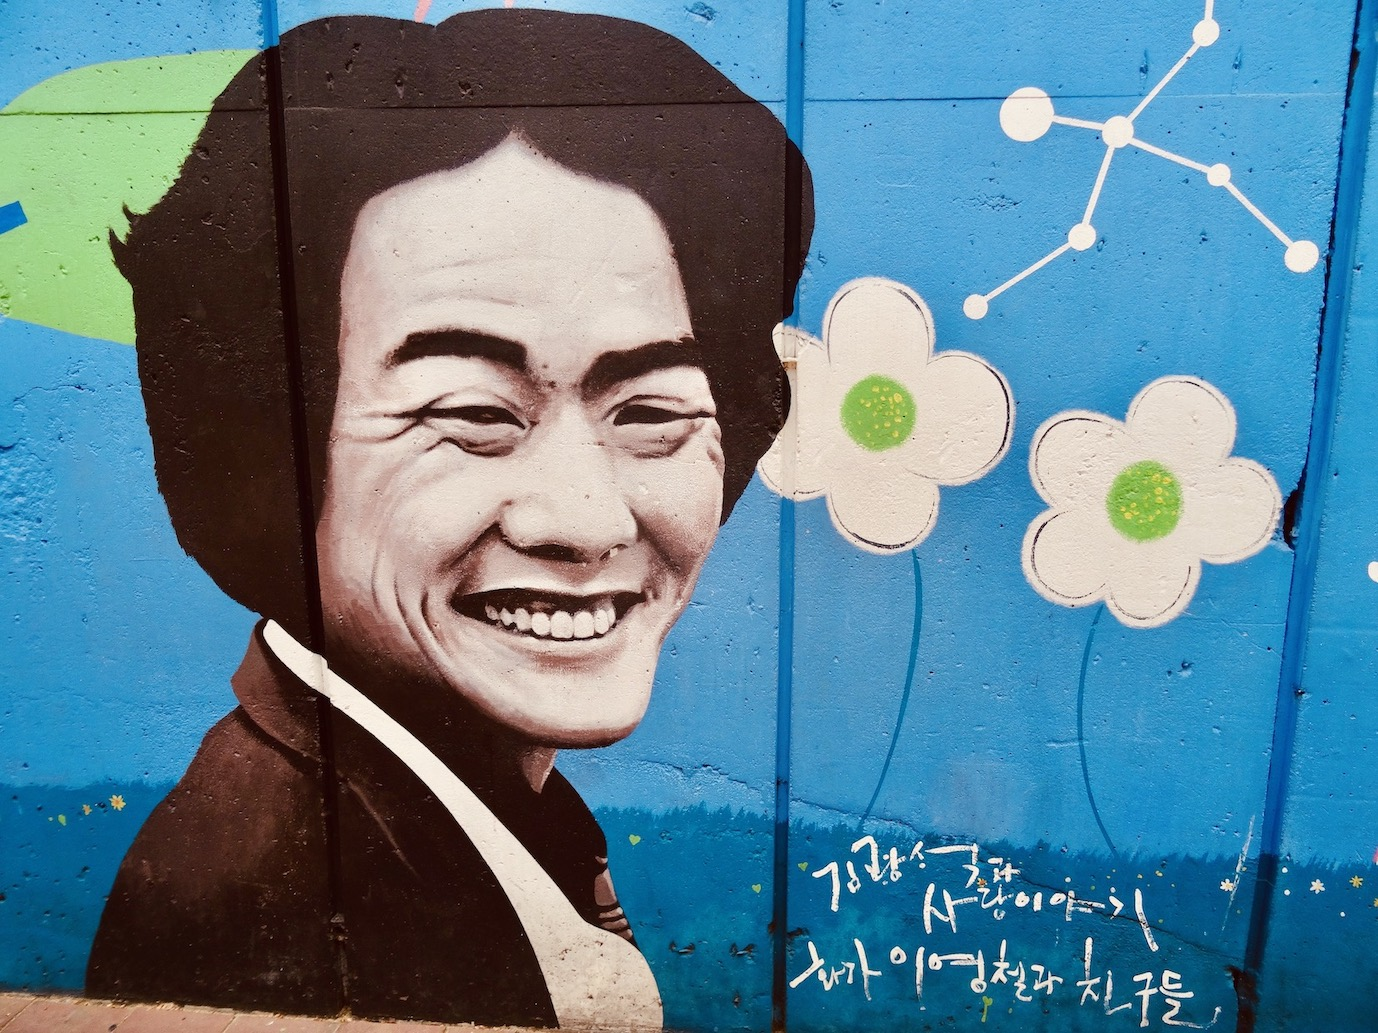 Kim Kwang-seok mural Daegu South Korea.